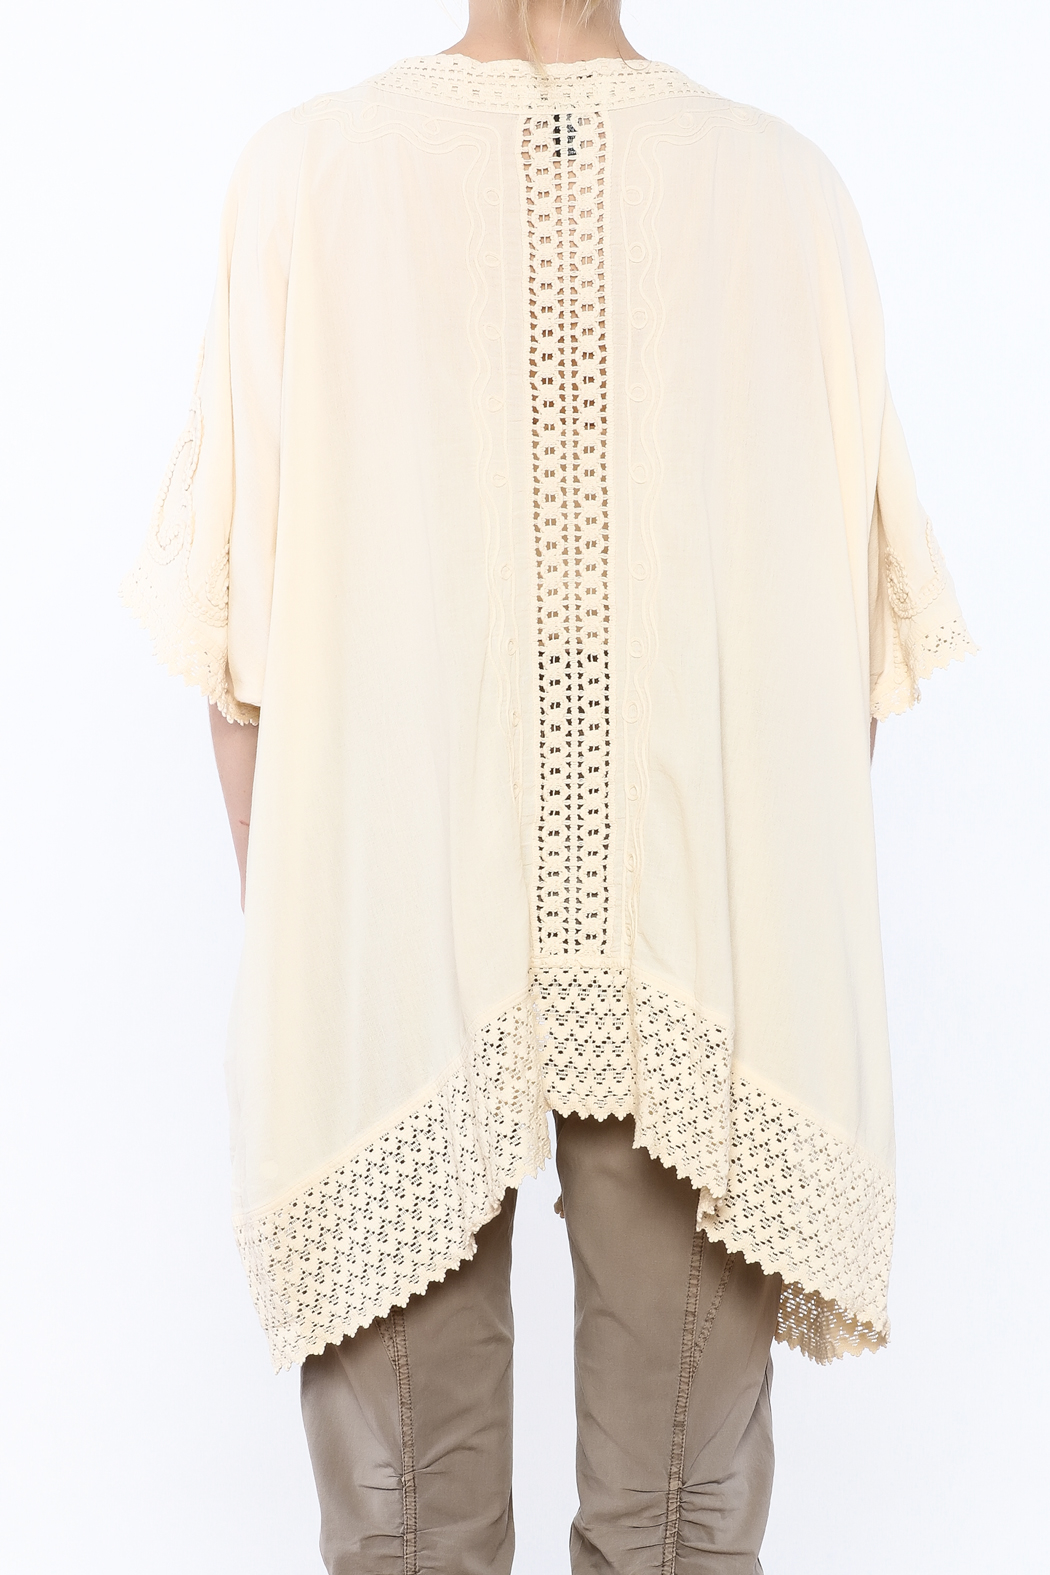 Gretty Zuegar Beige Crochet Lace Cardigan - Back Cropped Image